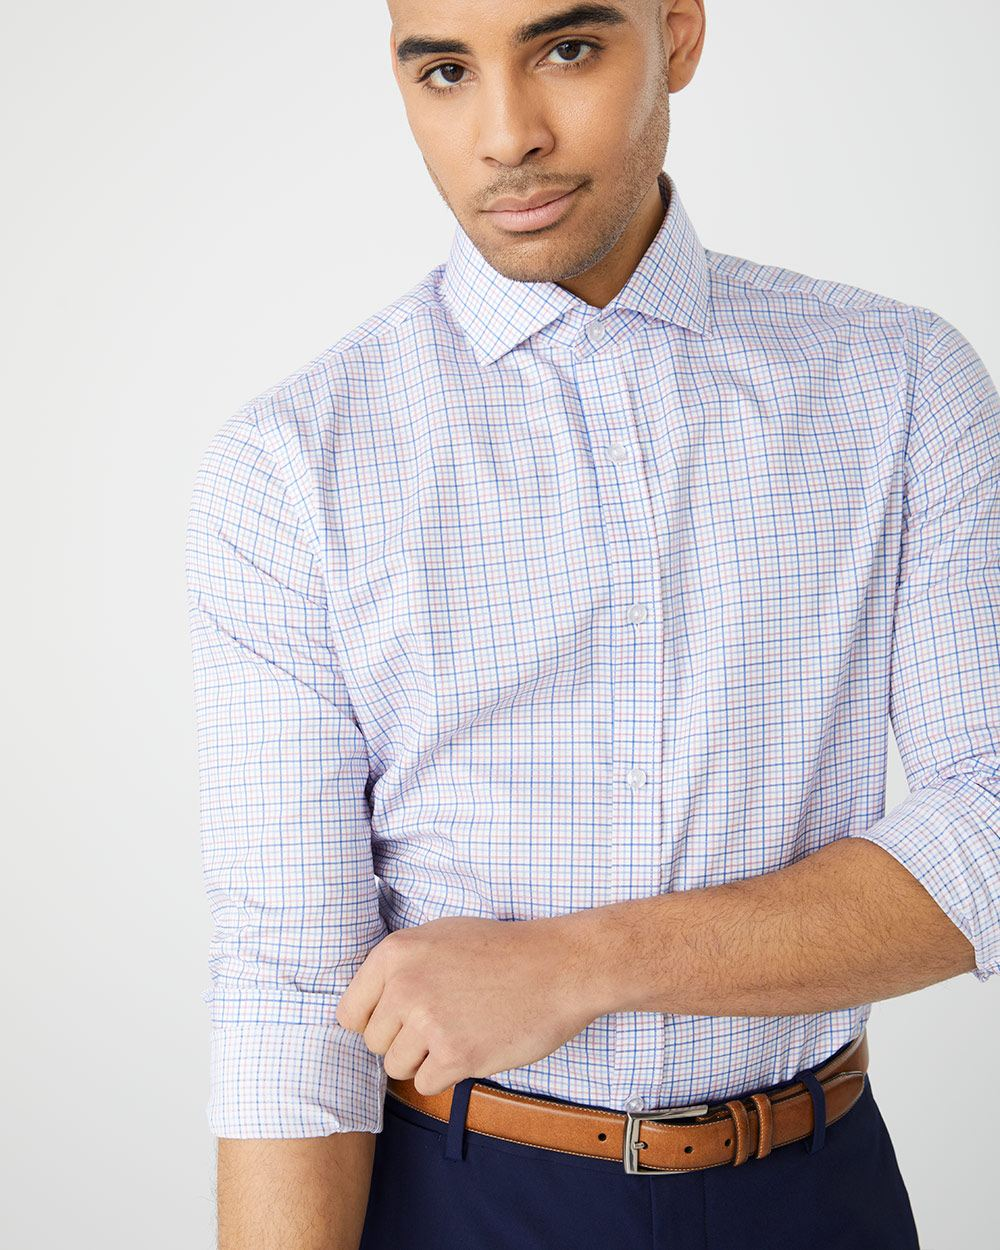 Athletic fit pastel check dress shirt